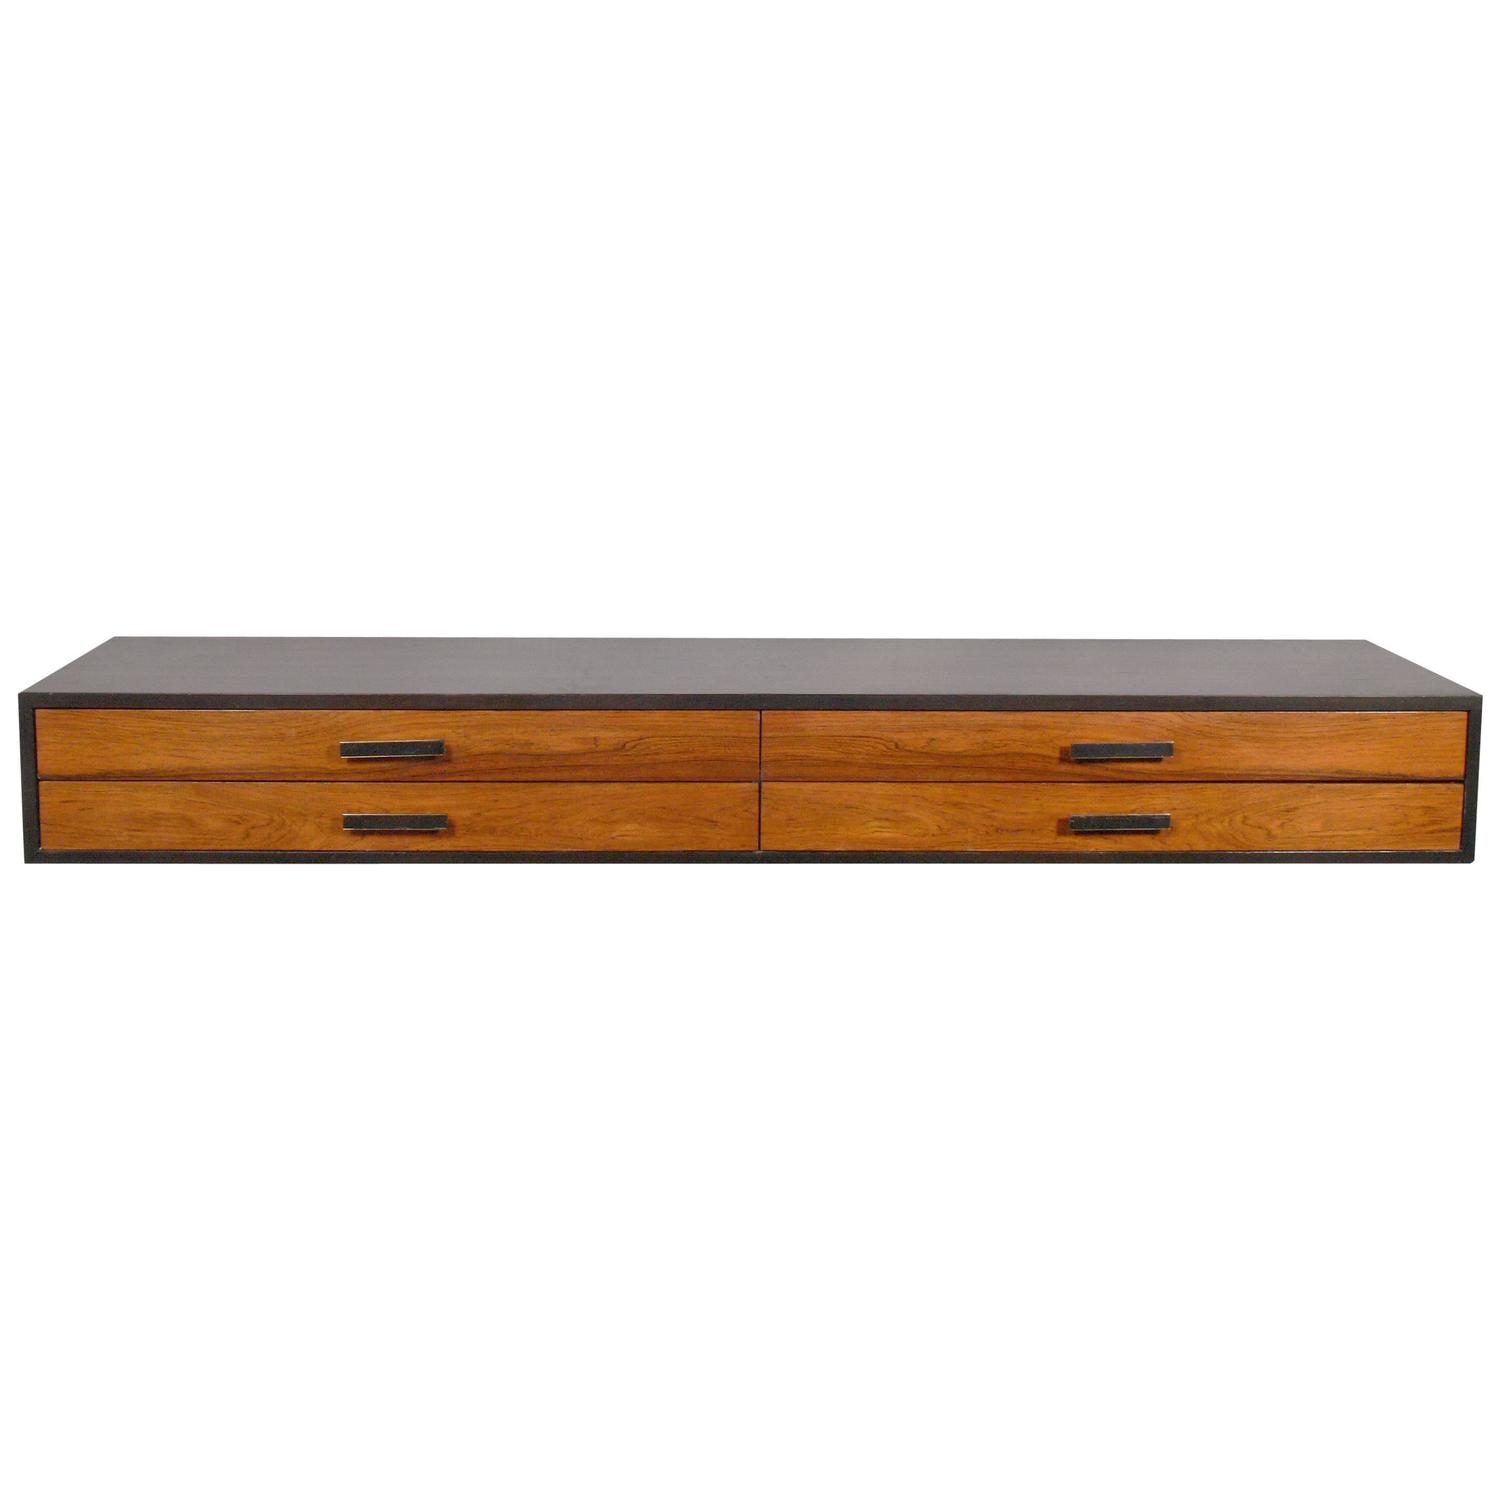 Harvey Probber Wall-Mounted Console Table or Desk at 1stdibs